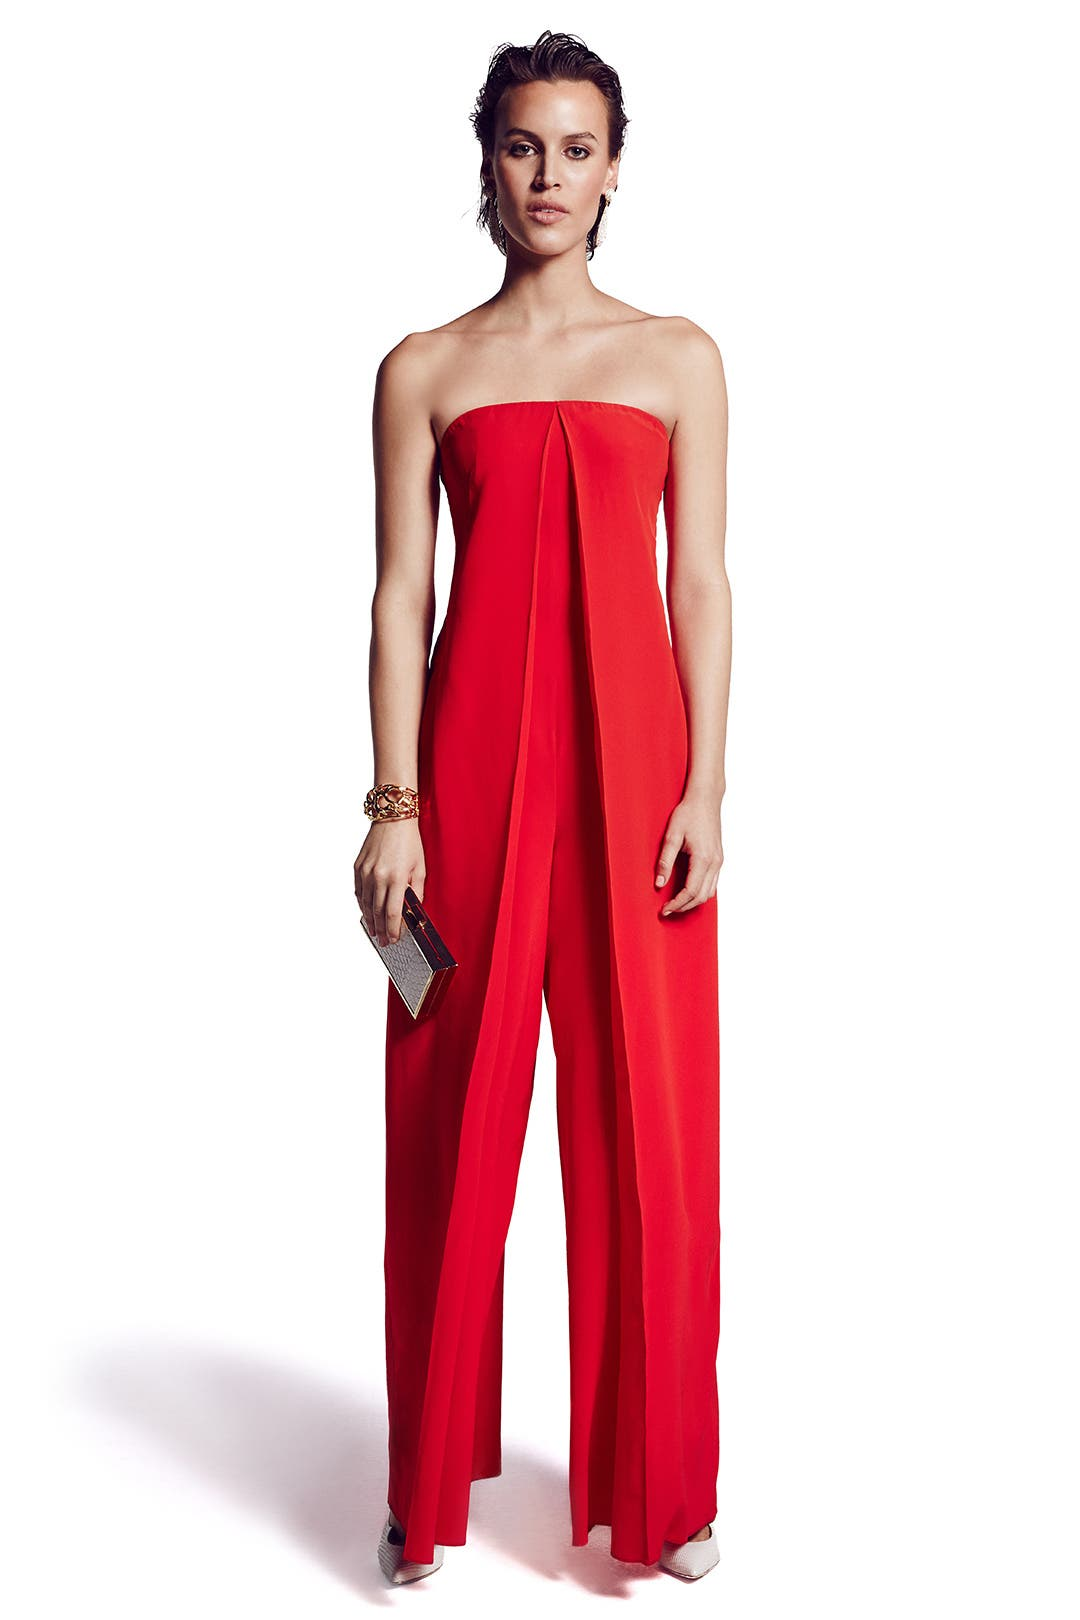 Origami jumpsuit by cedric charlier for 333 rent the runway - Jumpsuit hochzeit ...